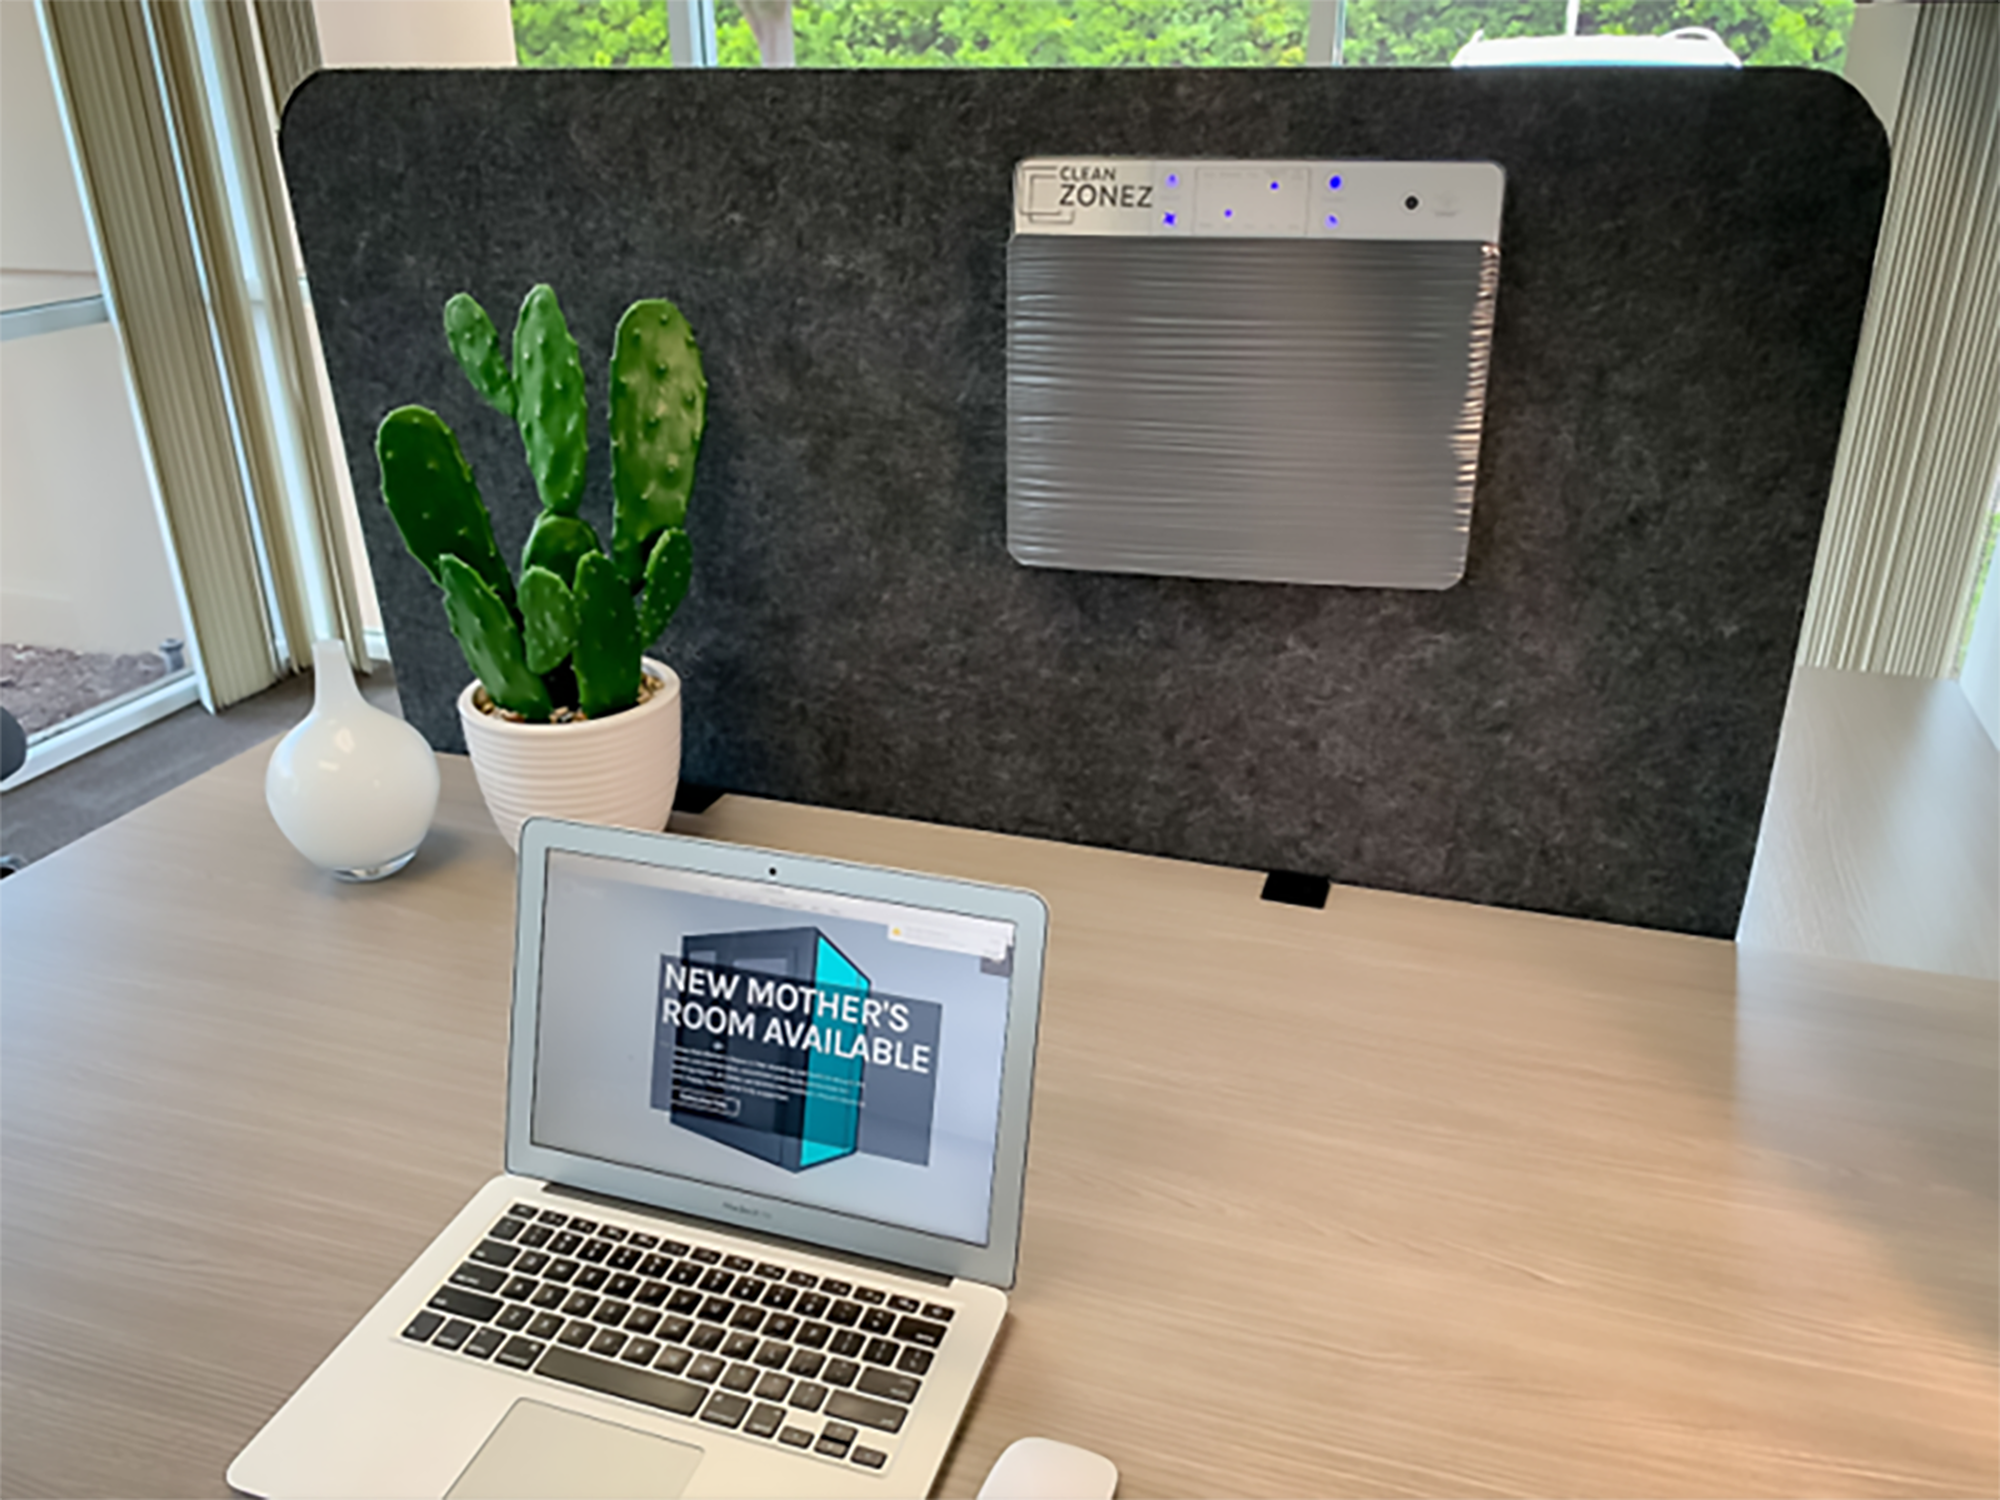 For general office air cleaning, the Clean Zonez panels (pictured) use six layers of air filtration which include an anti-microbial filter, a HEPA filer, and UVC sterilization. These panels can be attached to any workstation panel or desktop divider, including acrylic.